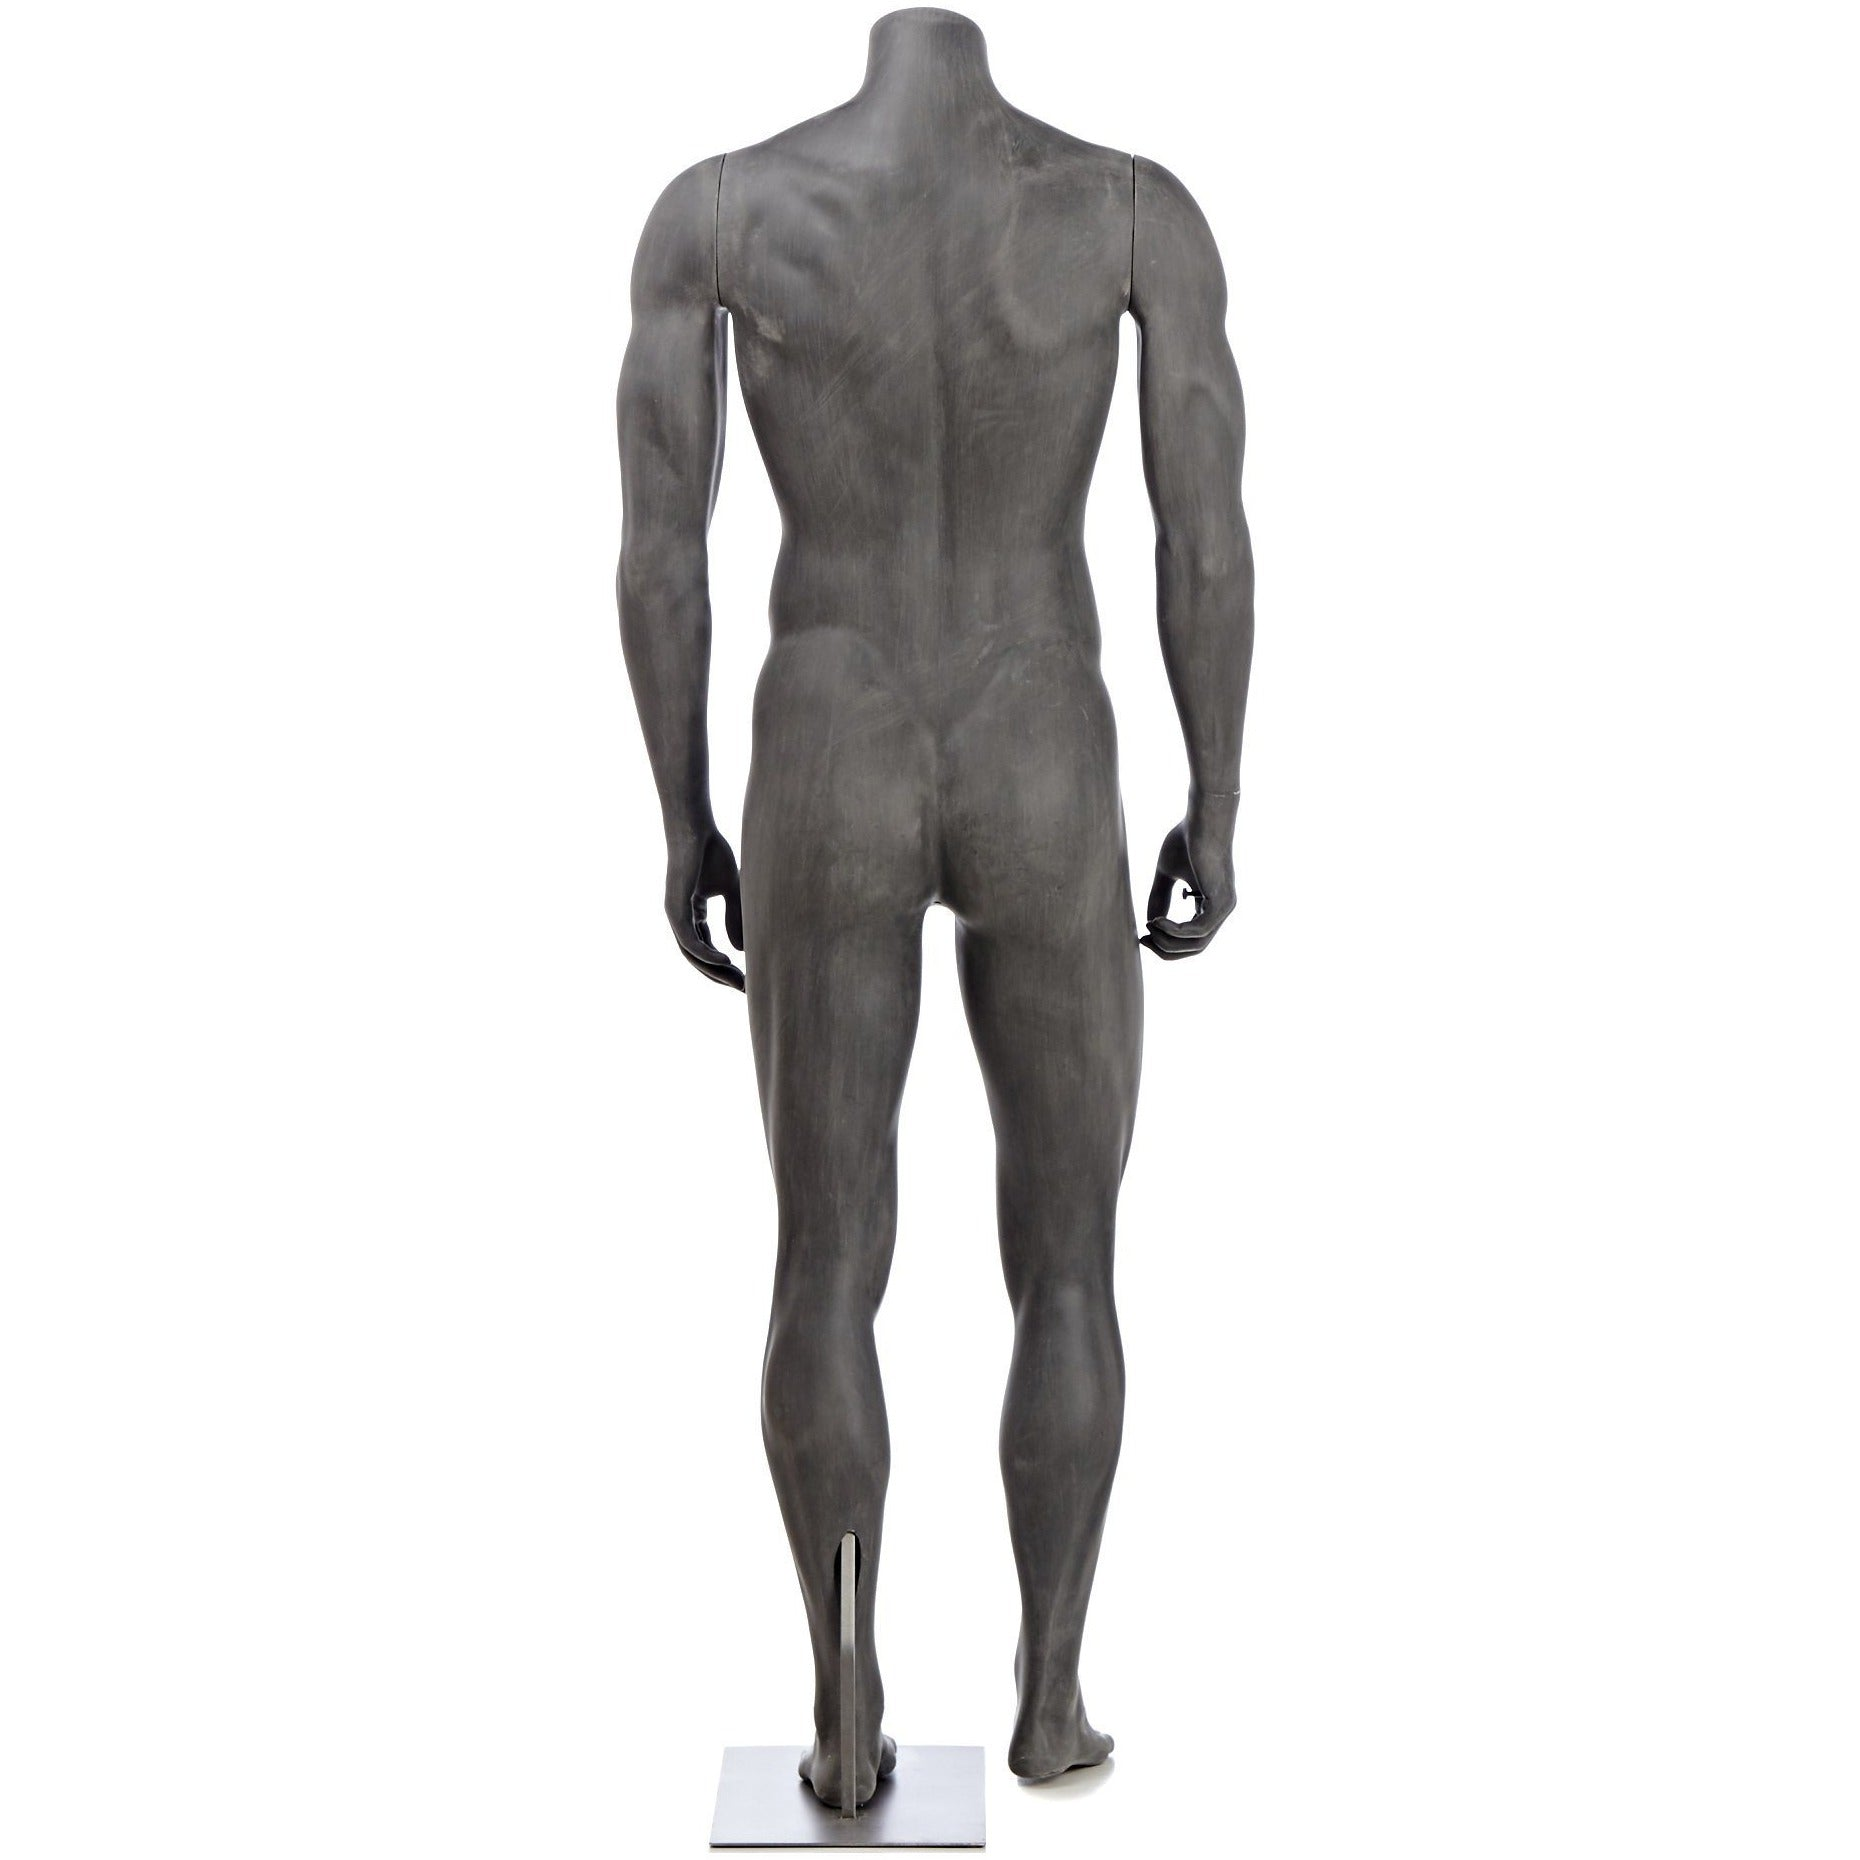 Athletic Male Full Form Mannequin By Fusion Specialties Back